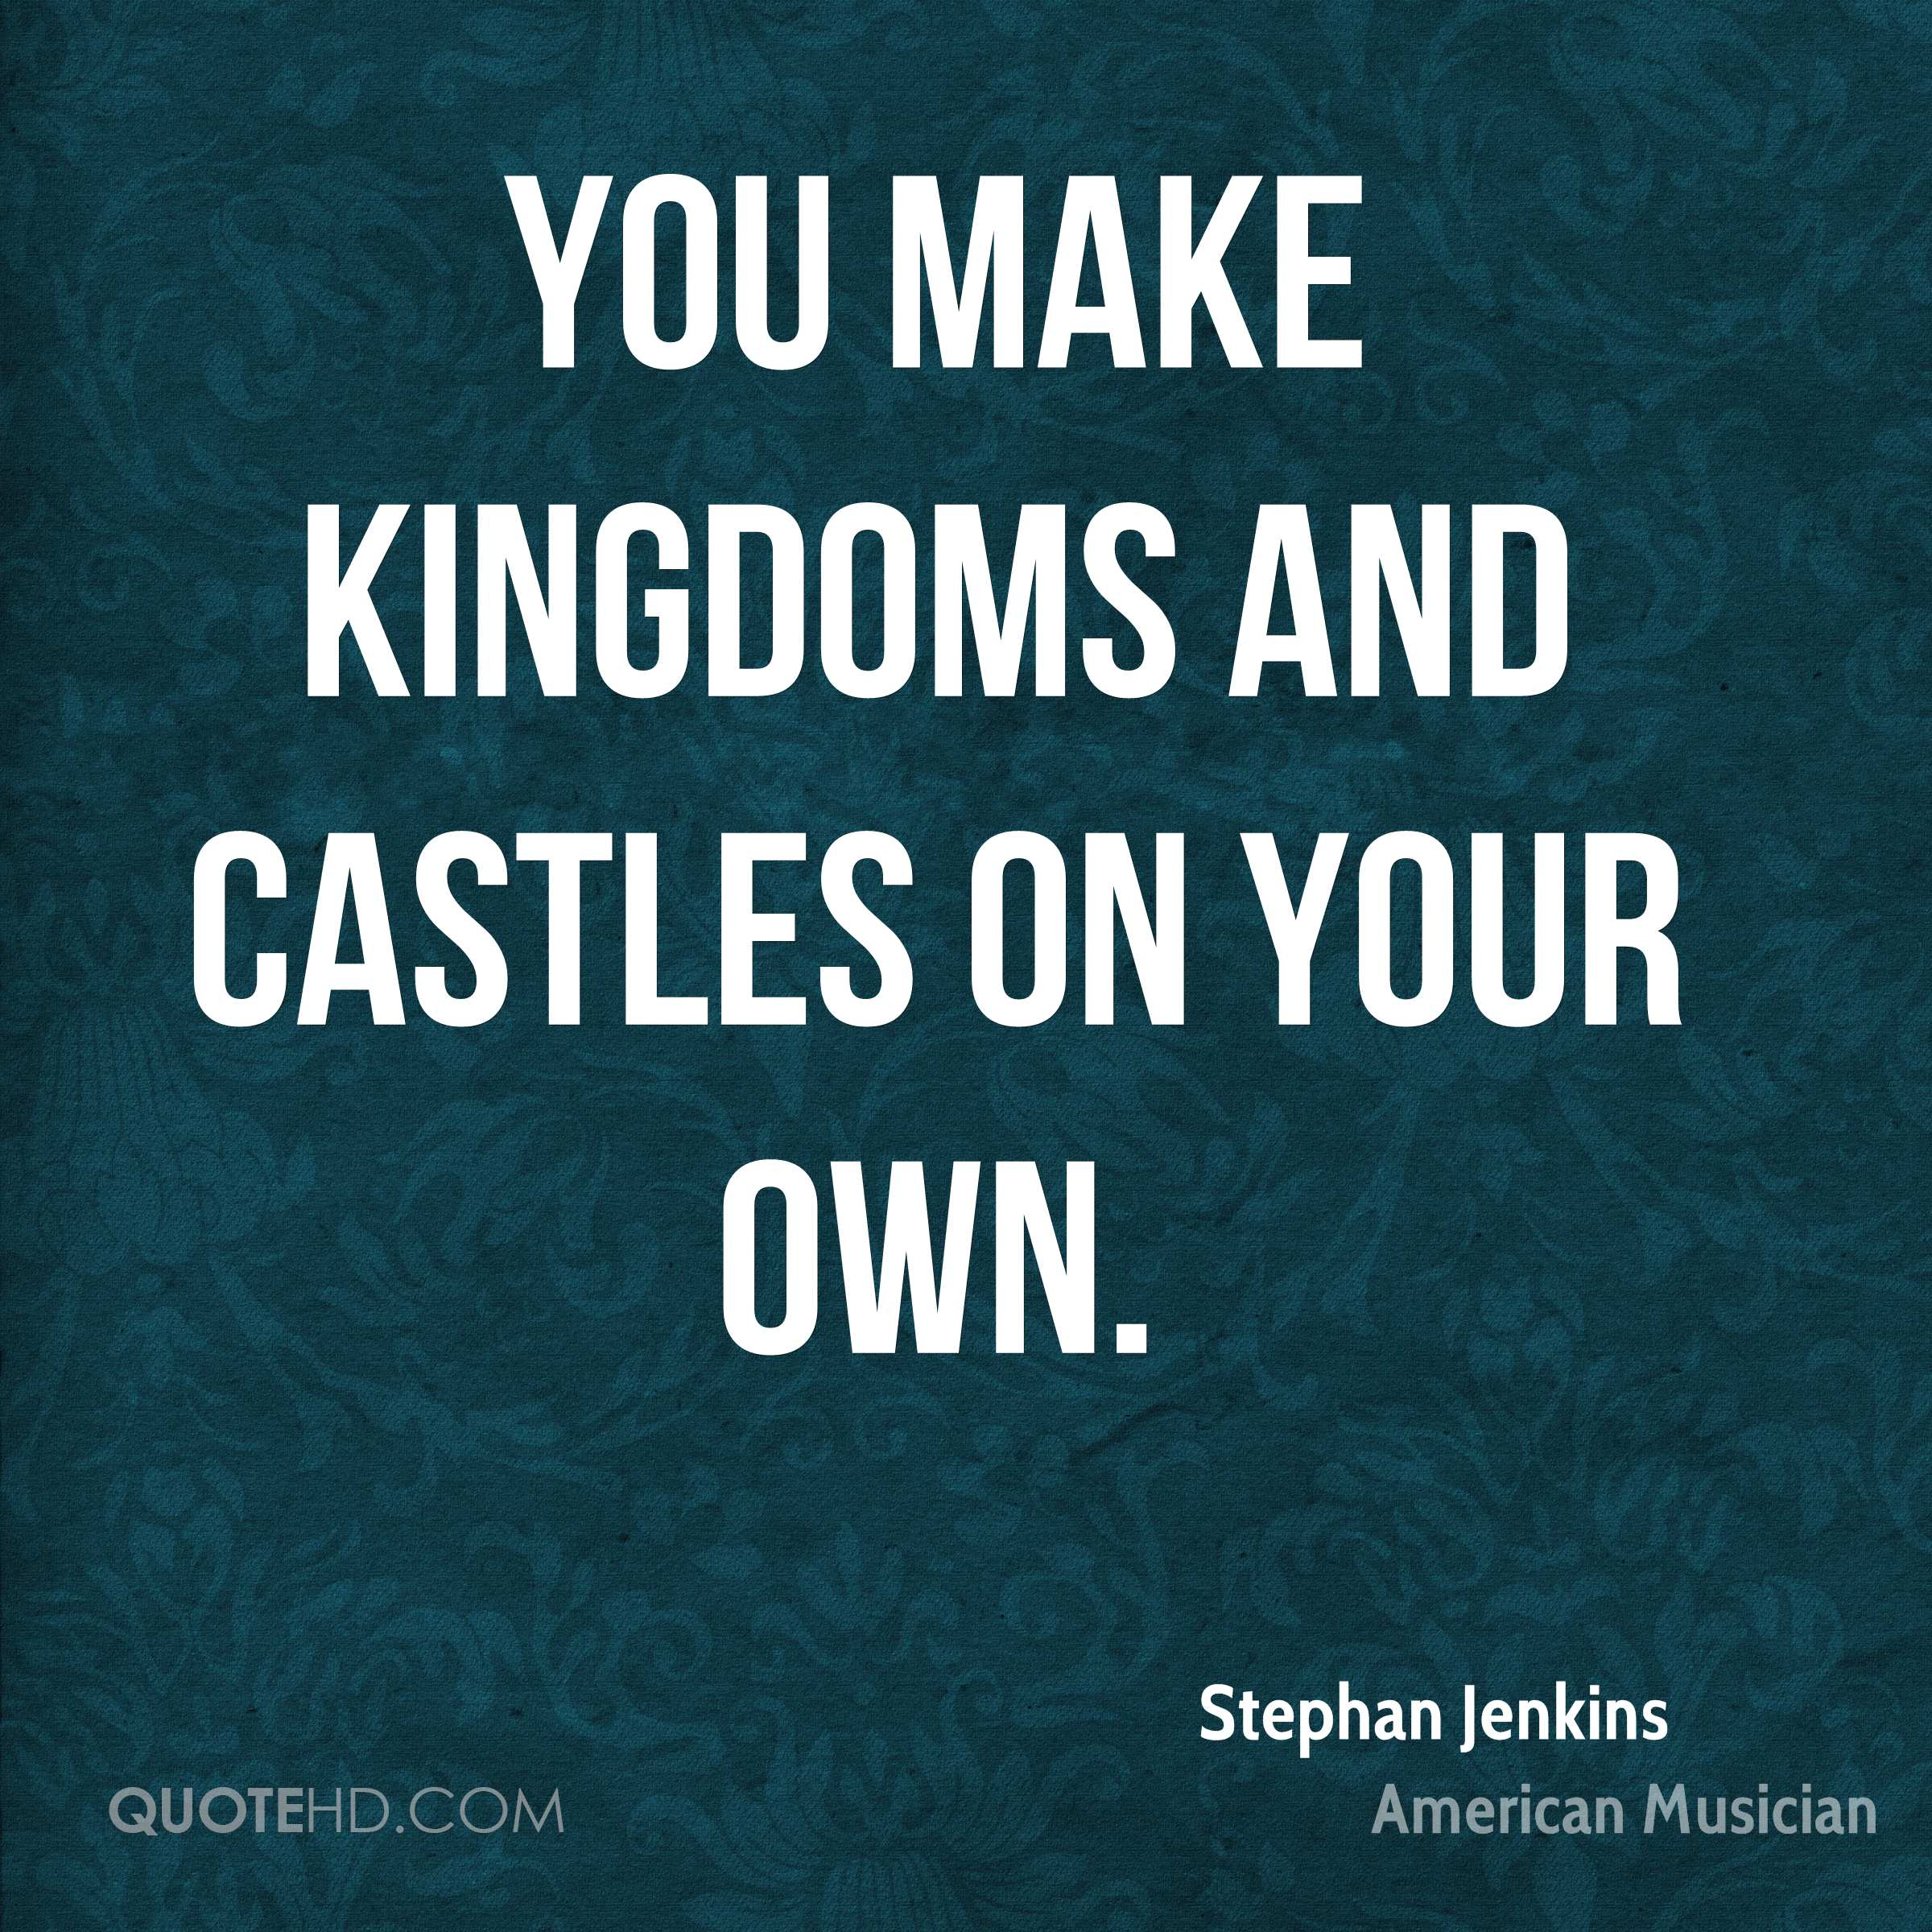 Quotes About Castles Stephan Jenkins Quotes  Quotehd